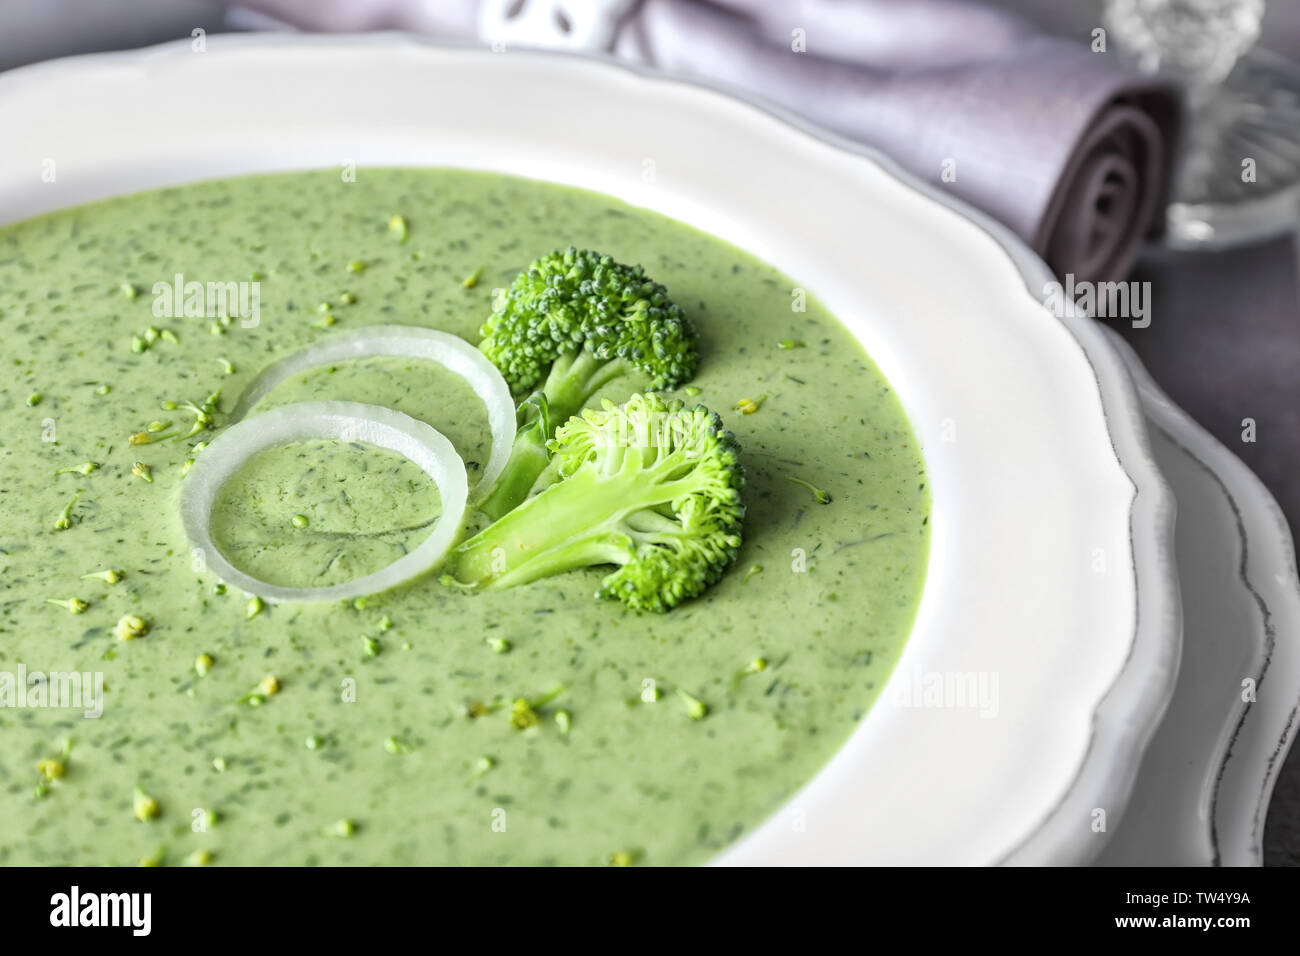 Plate with delicious broccoli cheese soup, closeup - Stock Image